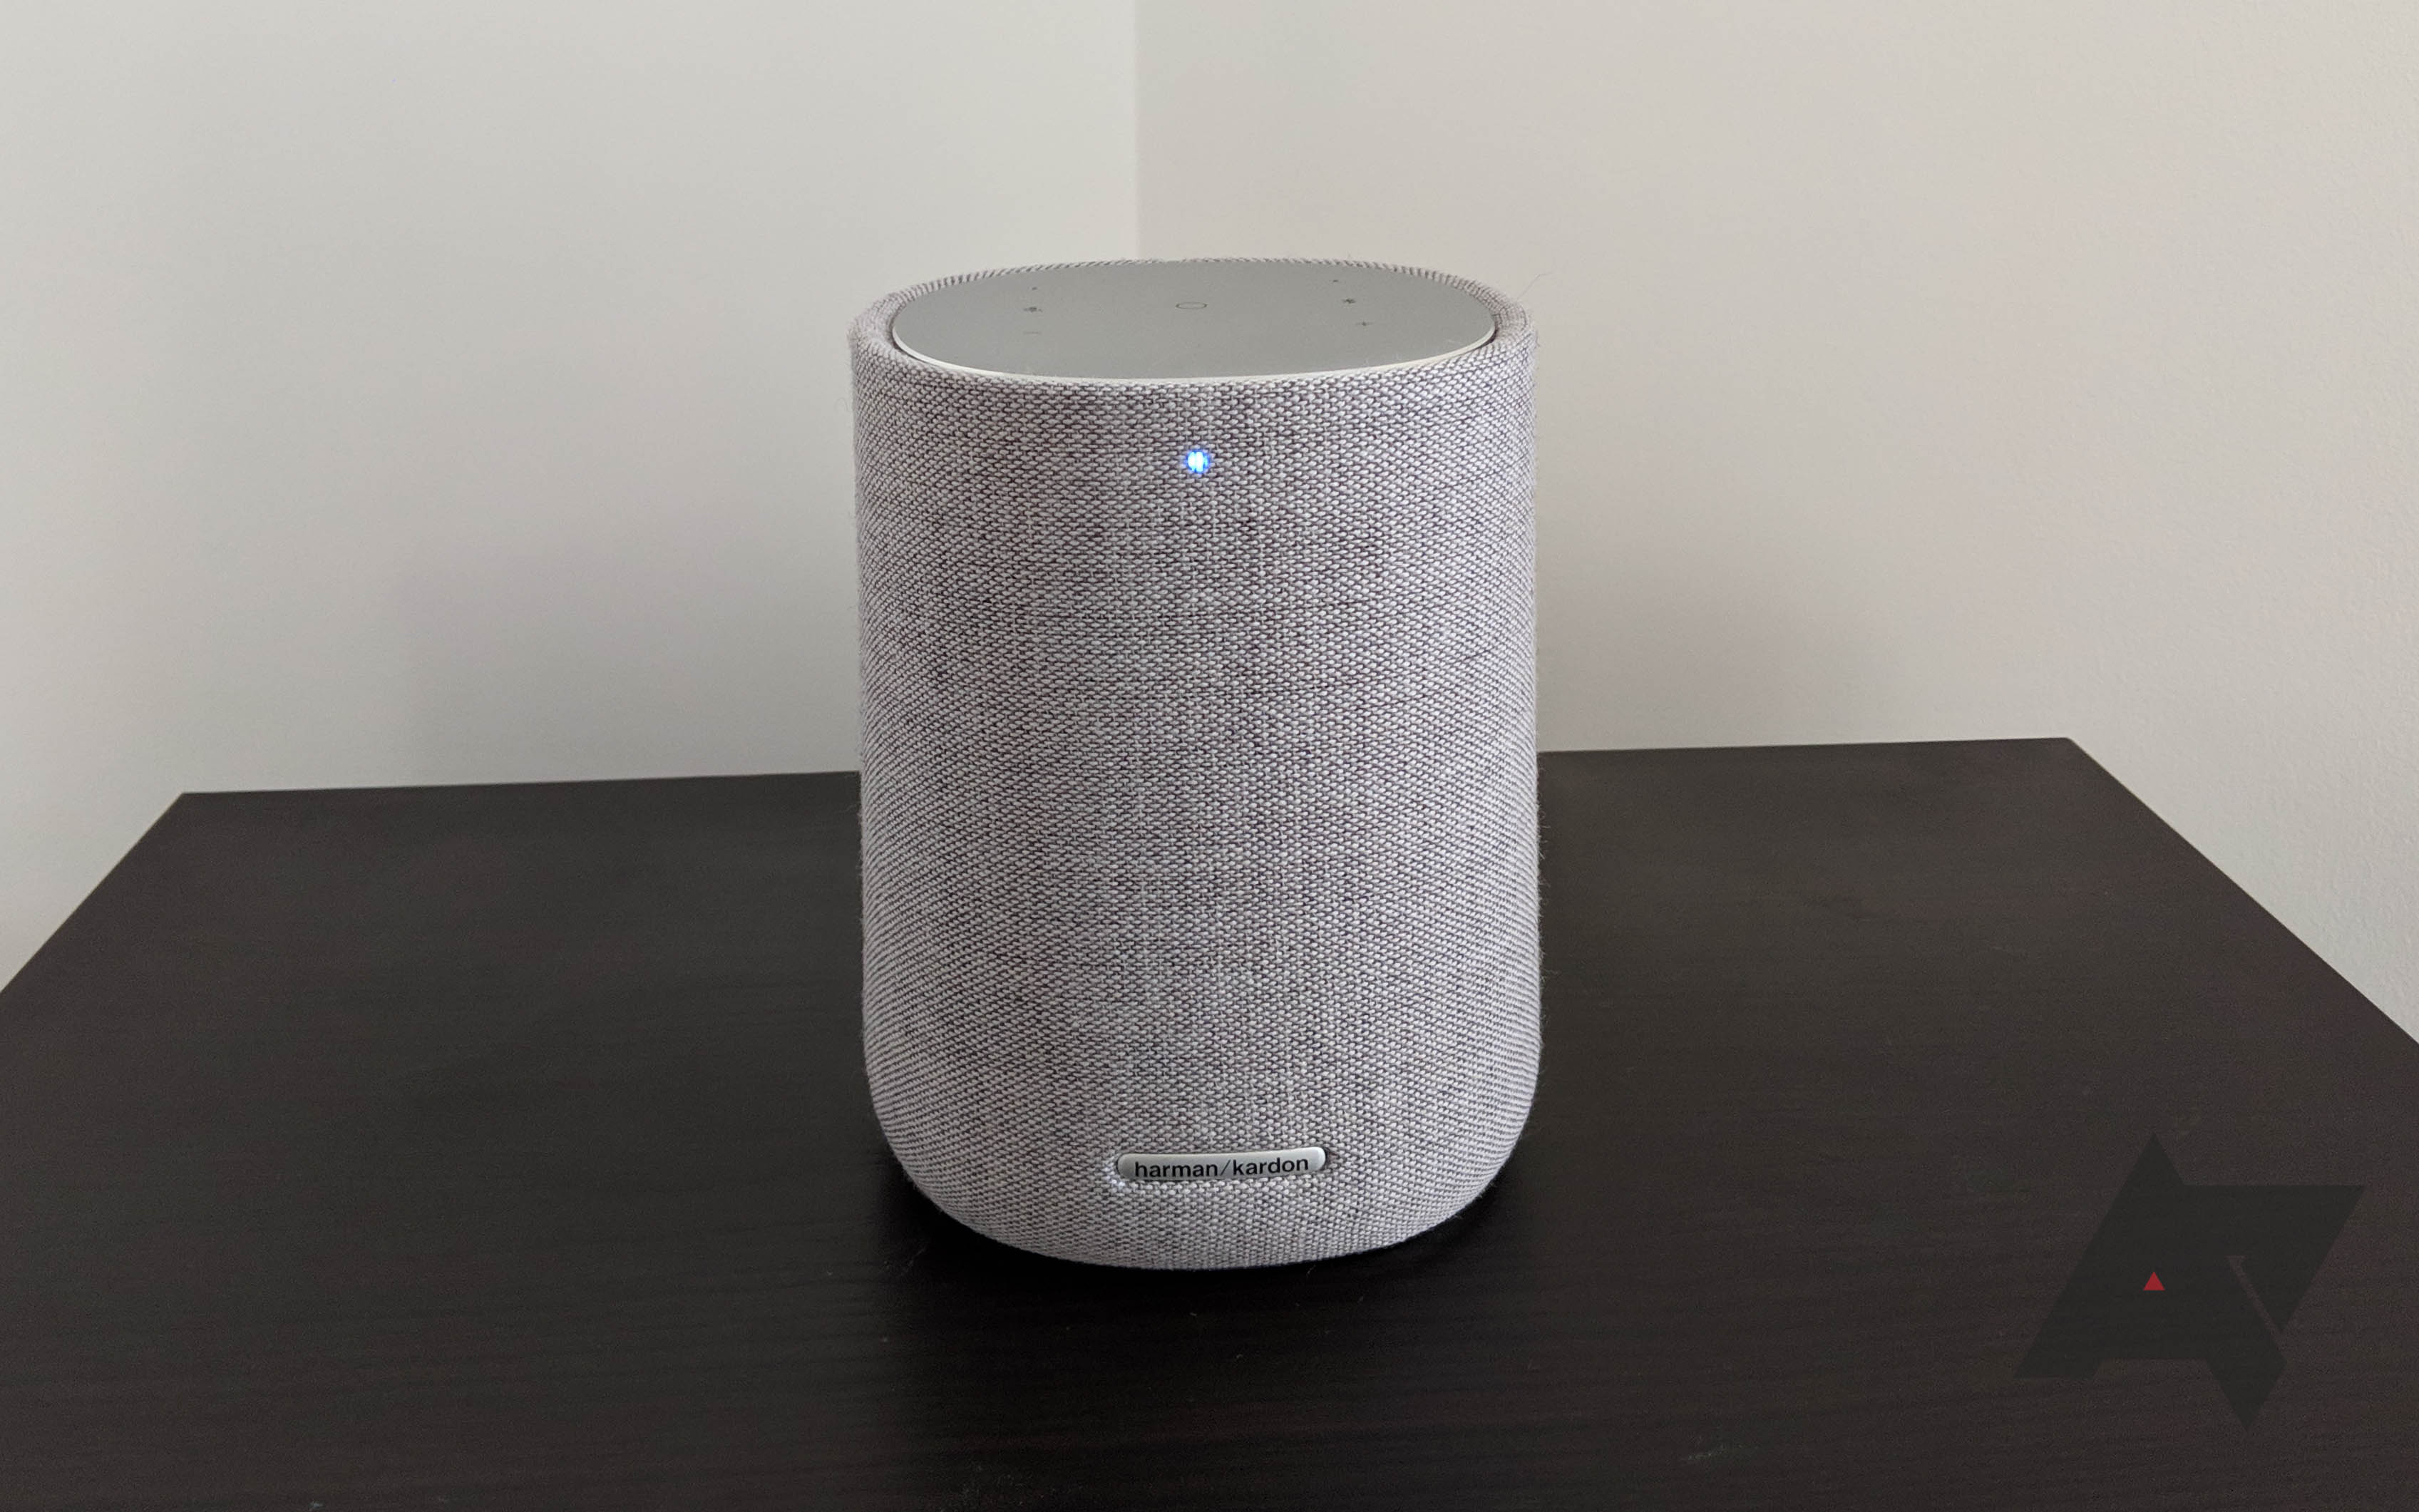 Harman Kardon Citation One review: The high-end Google Home you've